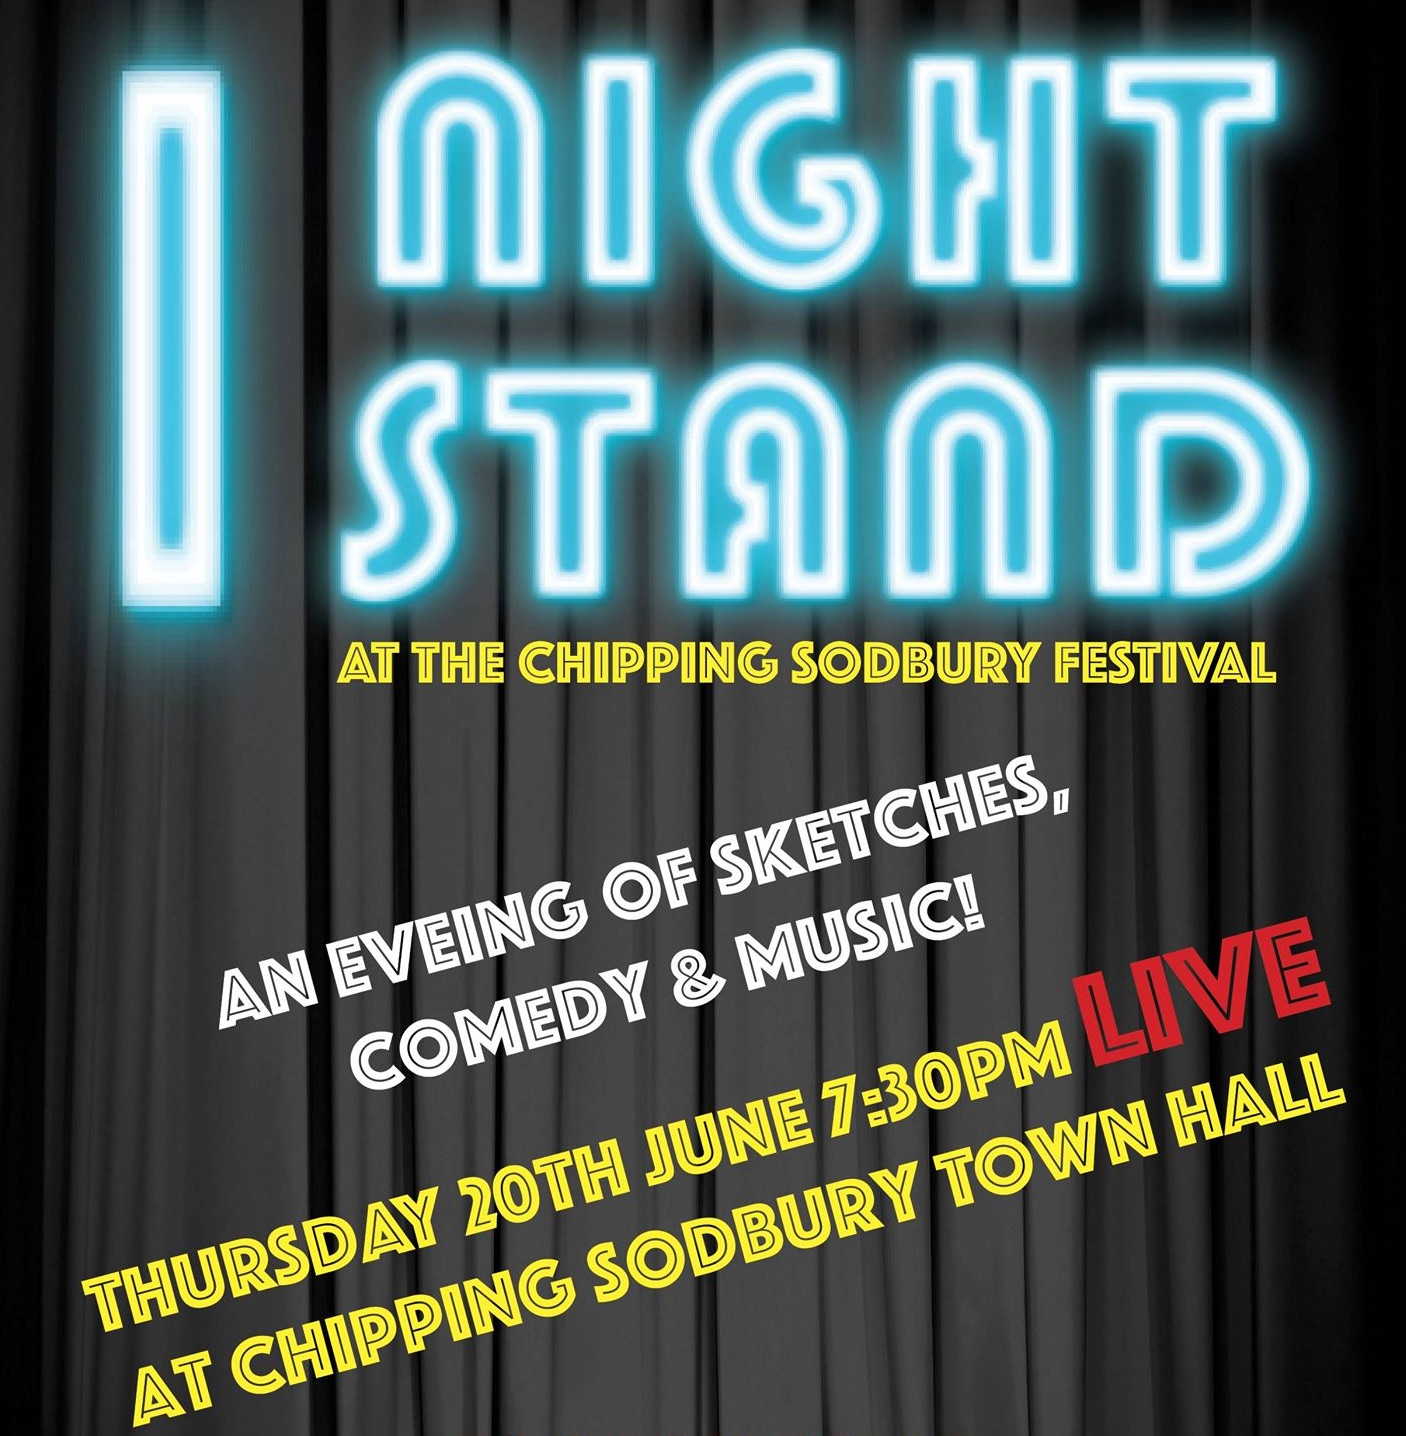 1 Night Stand at Chipping Sodbury Festival banner image